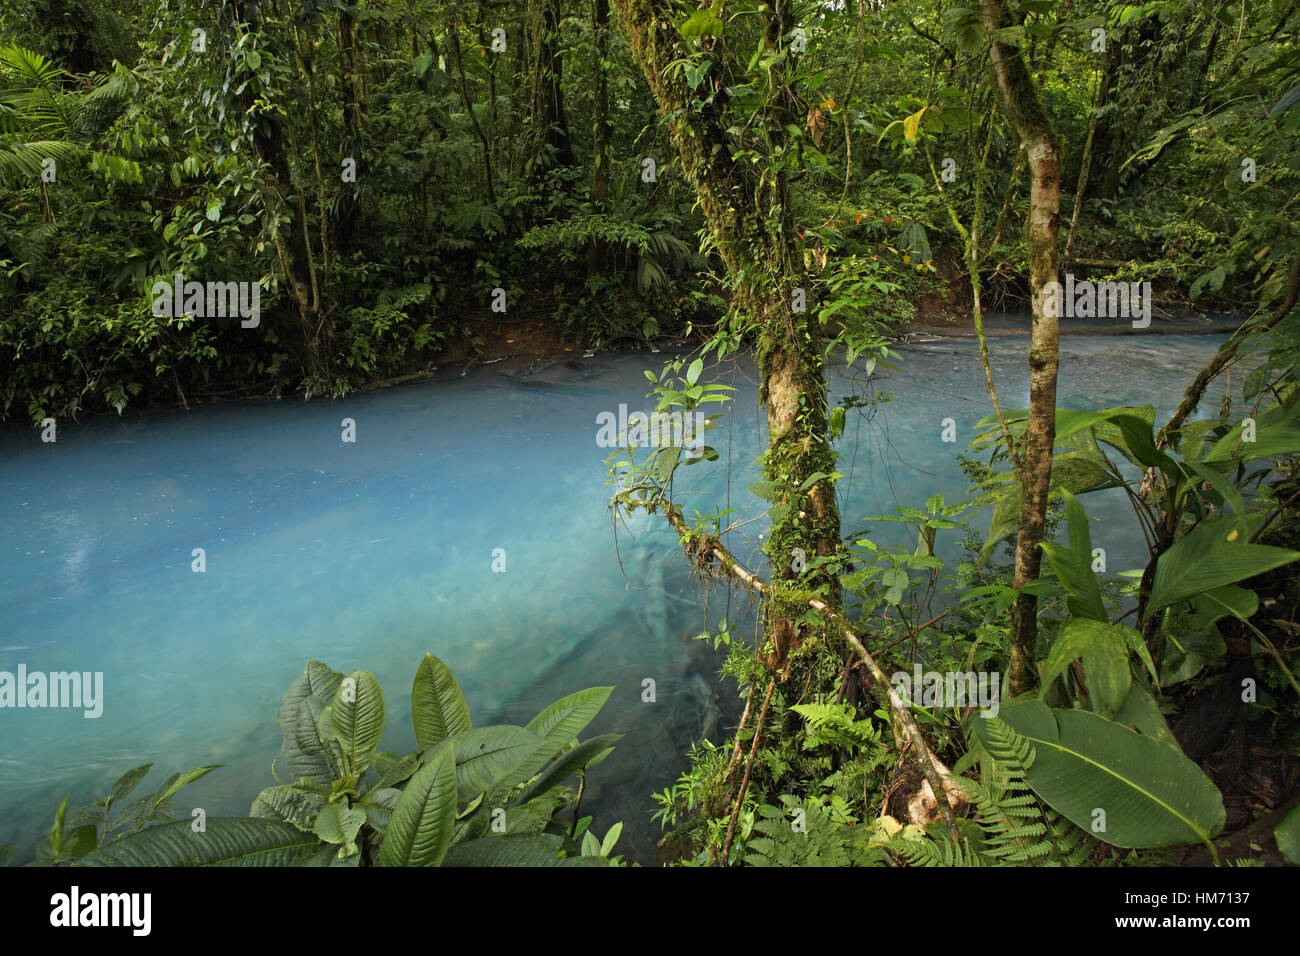 Rio Celeste (Blue River) in Tenorio Volcano National Park, Costa Rica. The blue coloration is a result of sulphur - Stock Image